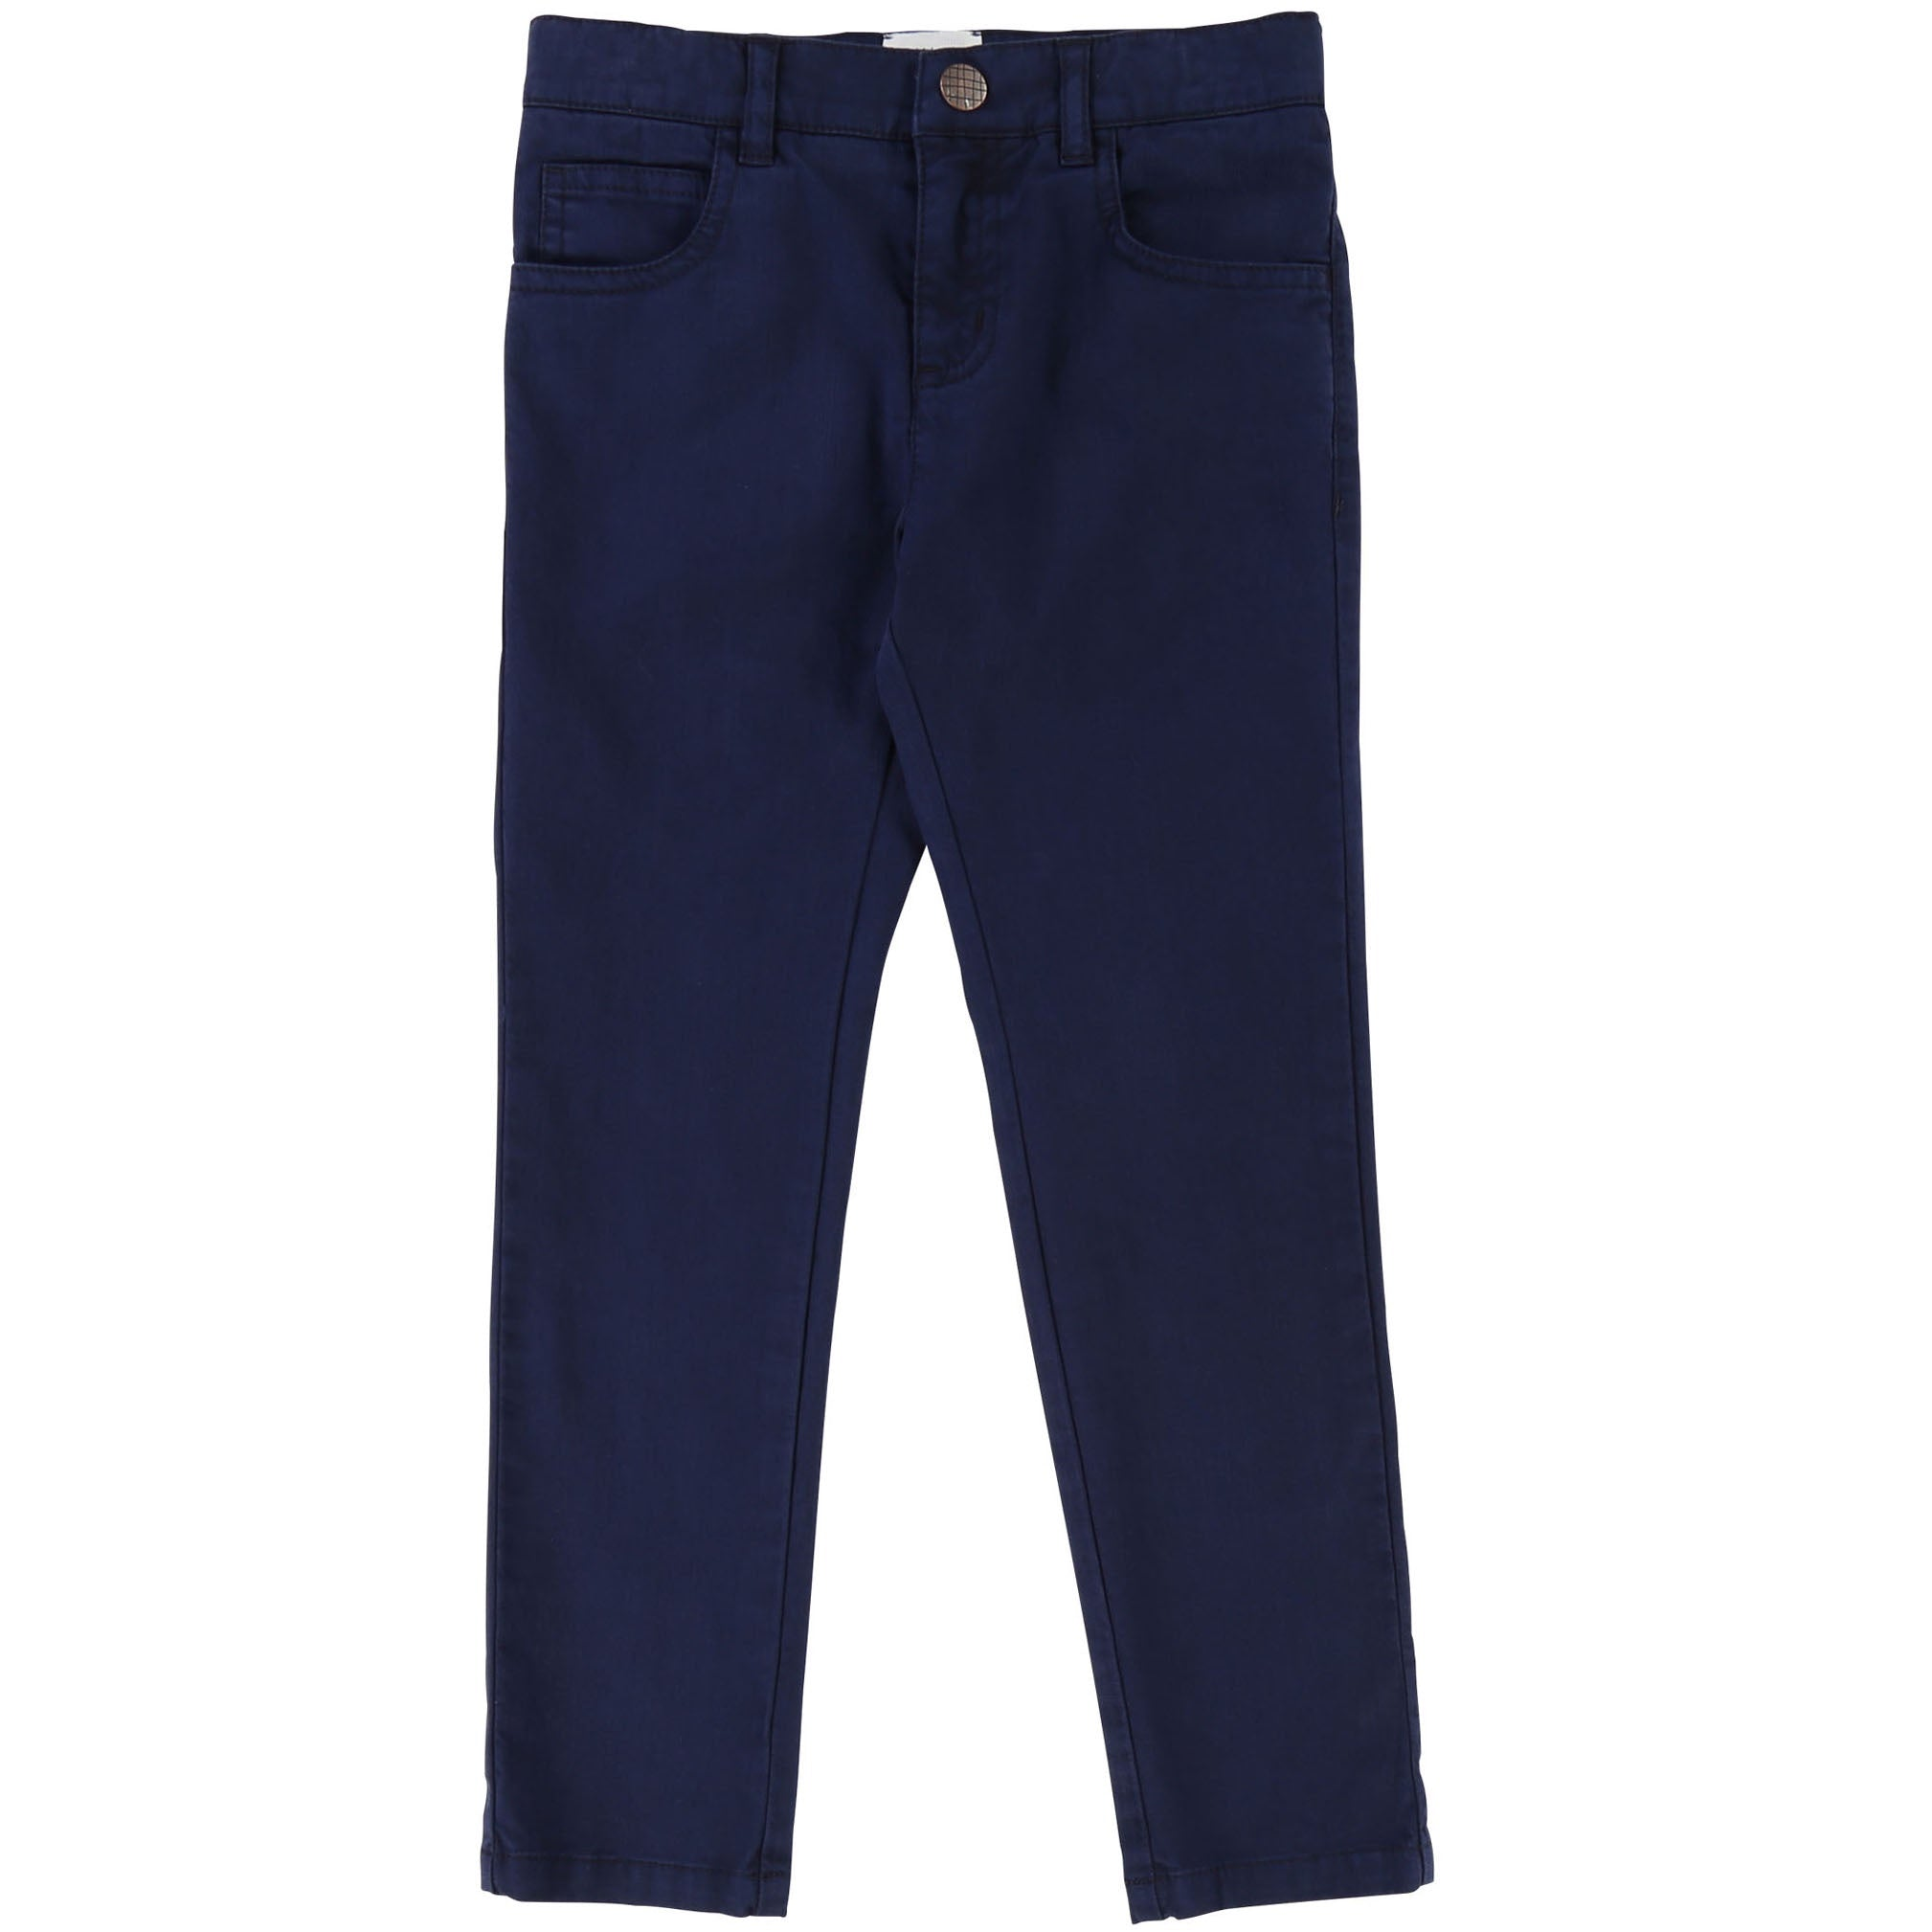 Navy Pant 85T